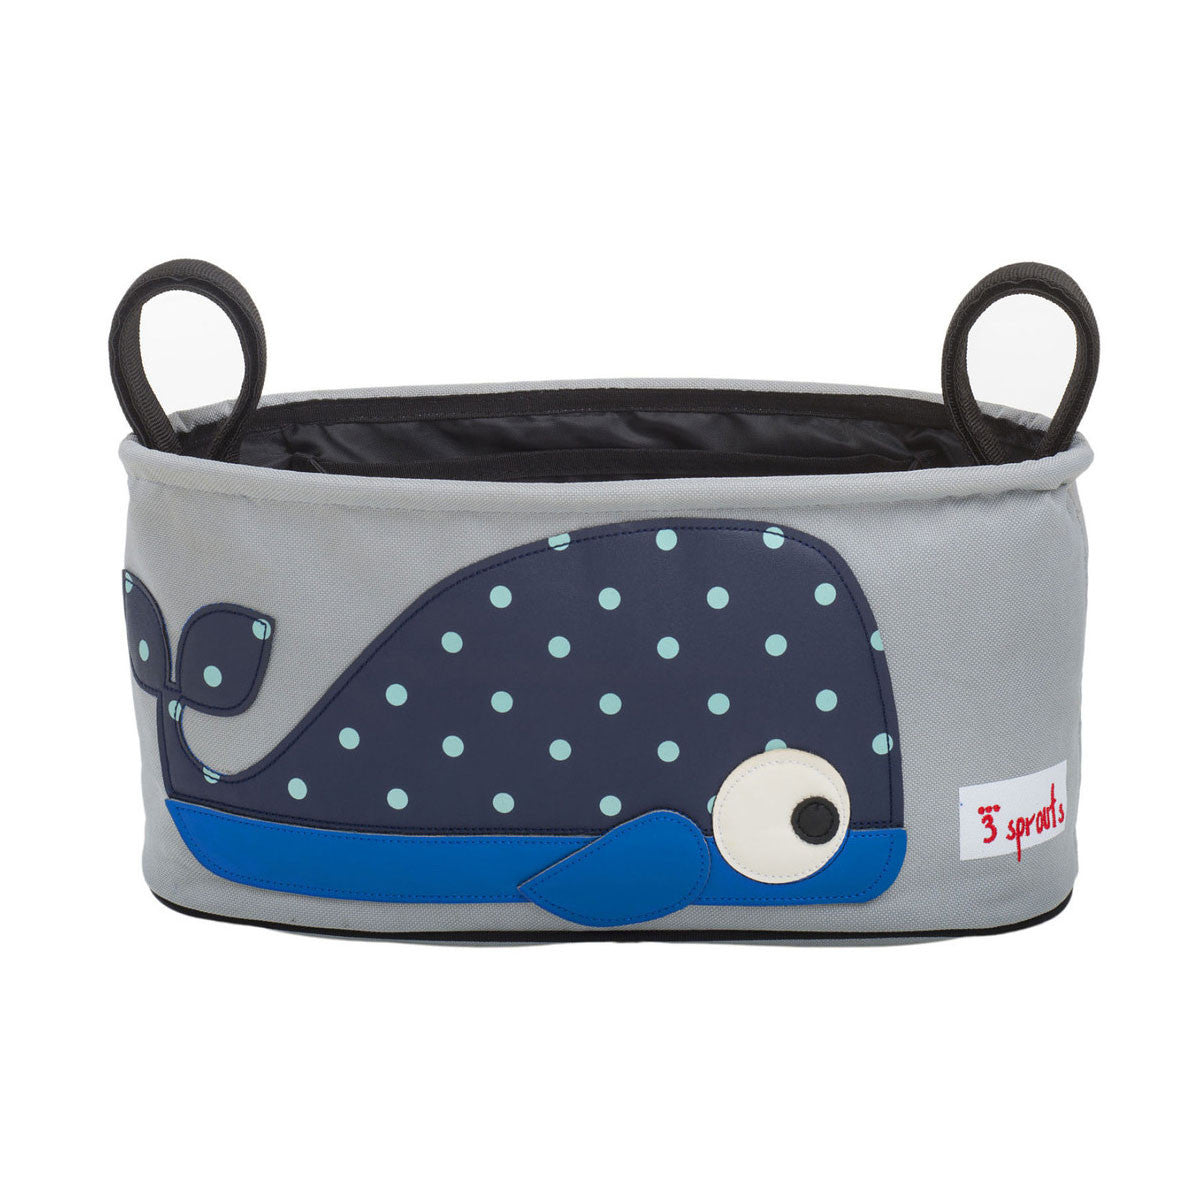 3 Sprouts Stroller Organiser Blue Whale - DarlingBaby